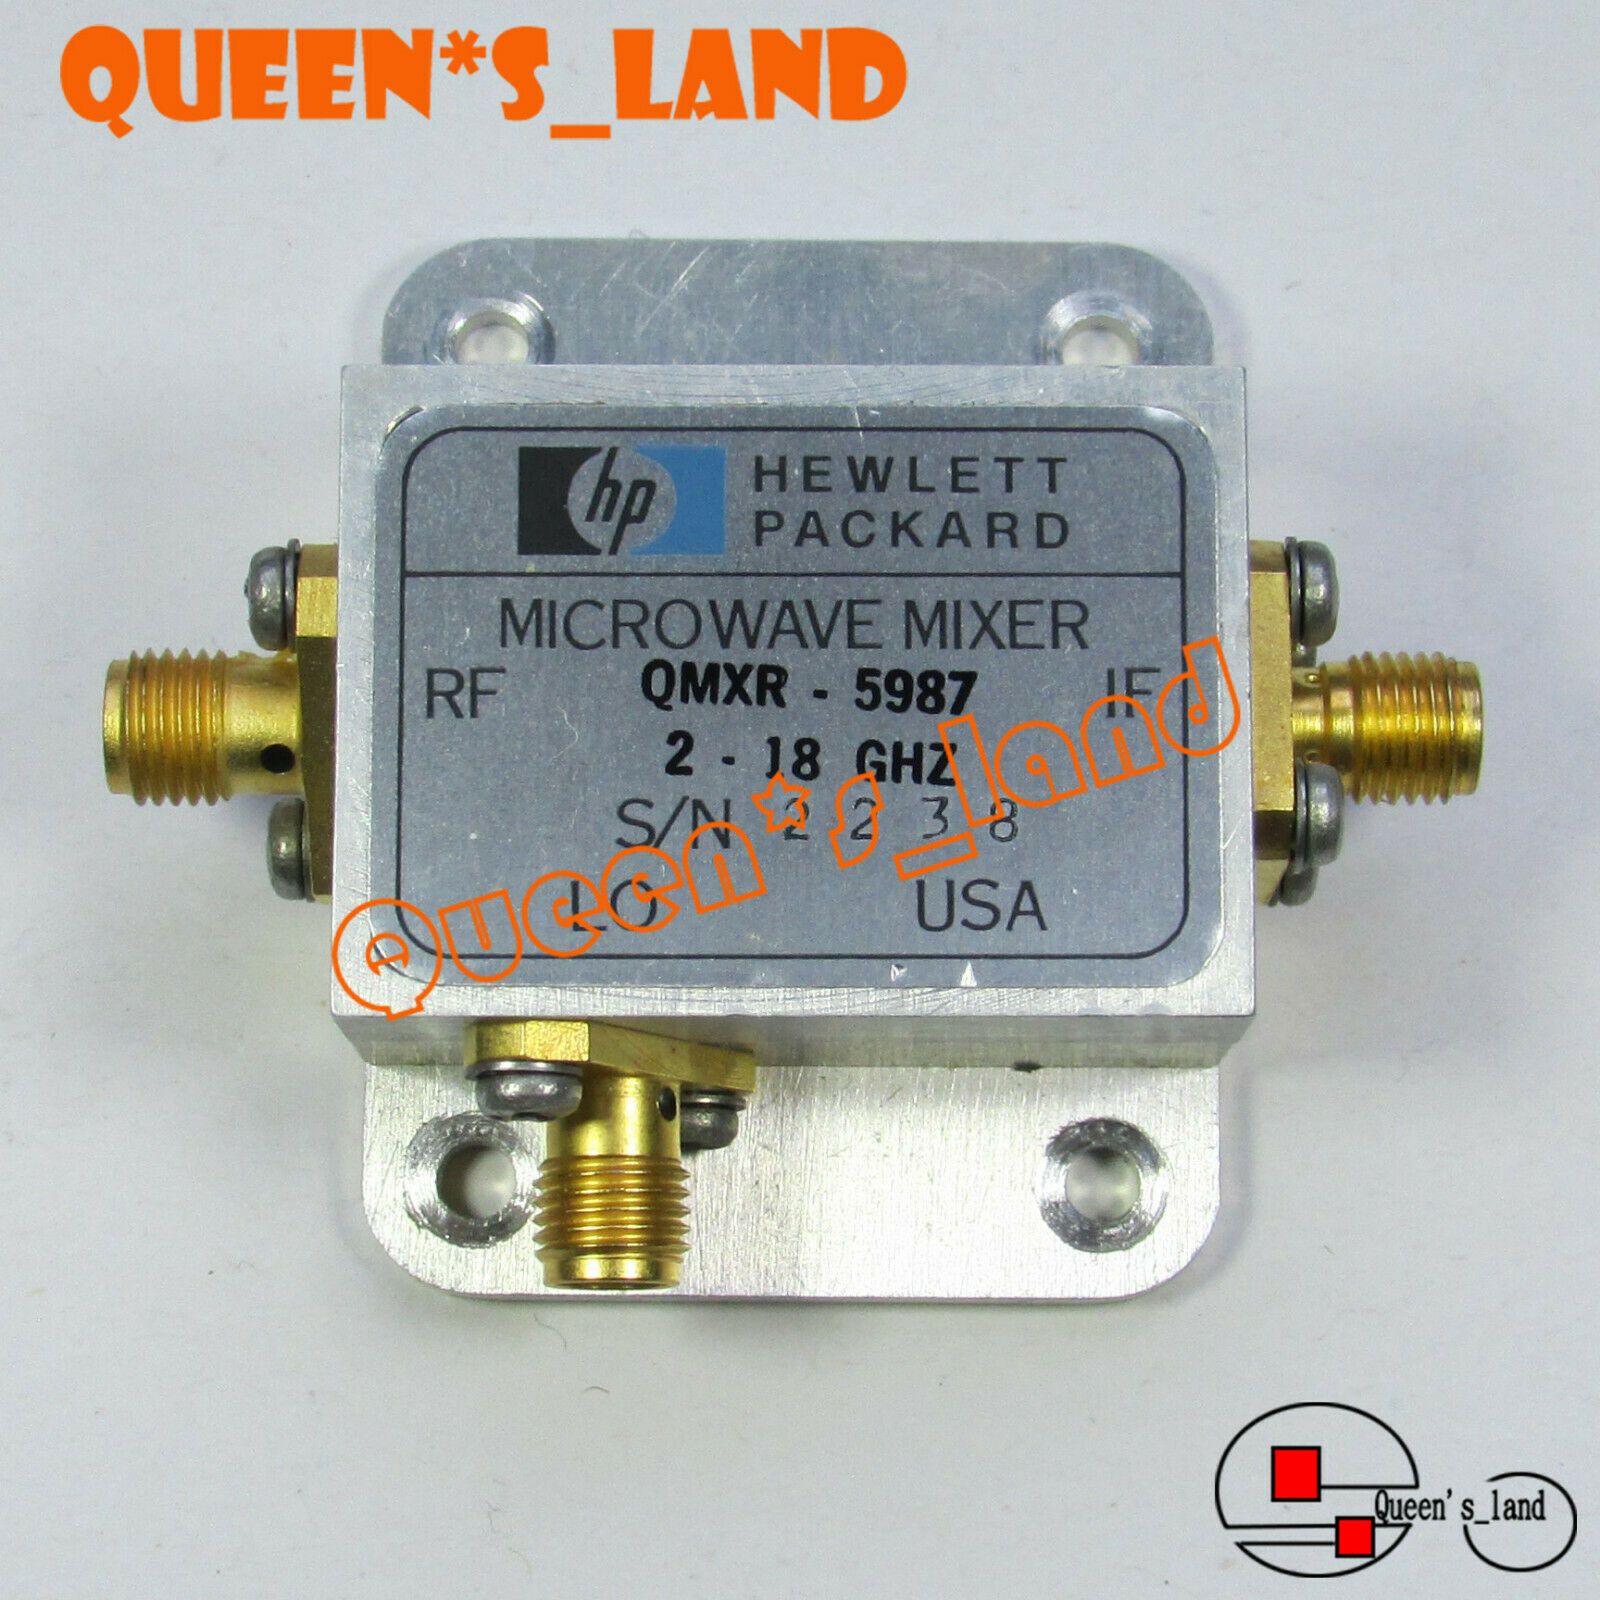 1used Hp Qmxr 5987 2 18ghz Sma Microwave Mixer 15500 Picclick Equipment Tools 2pcs Copper Gwinstek Lcr Kelvin Test Clip Bridge 1 Of 1only Available